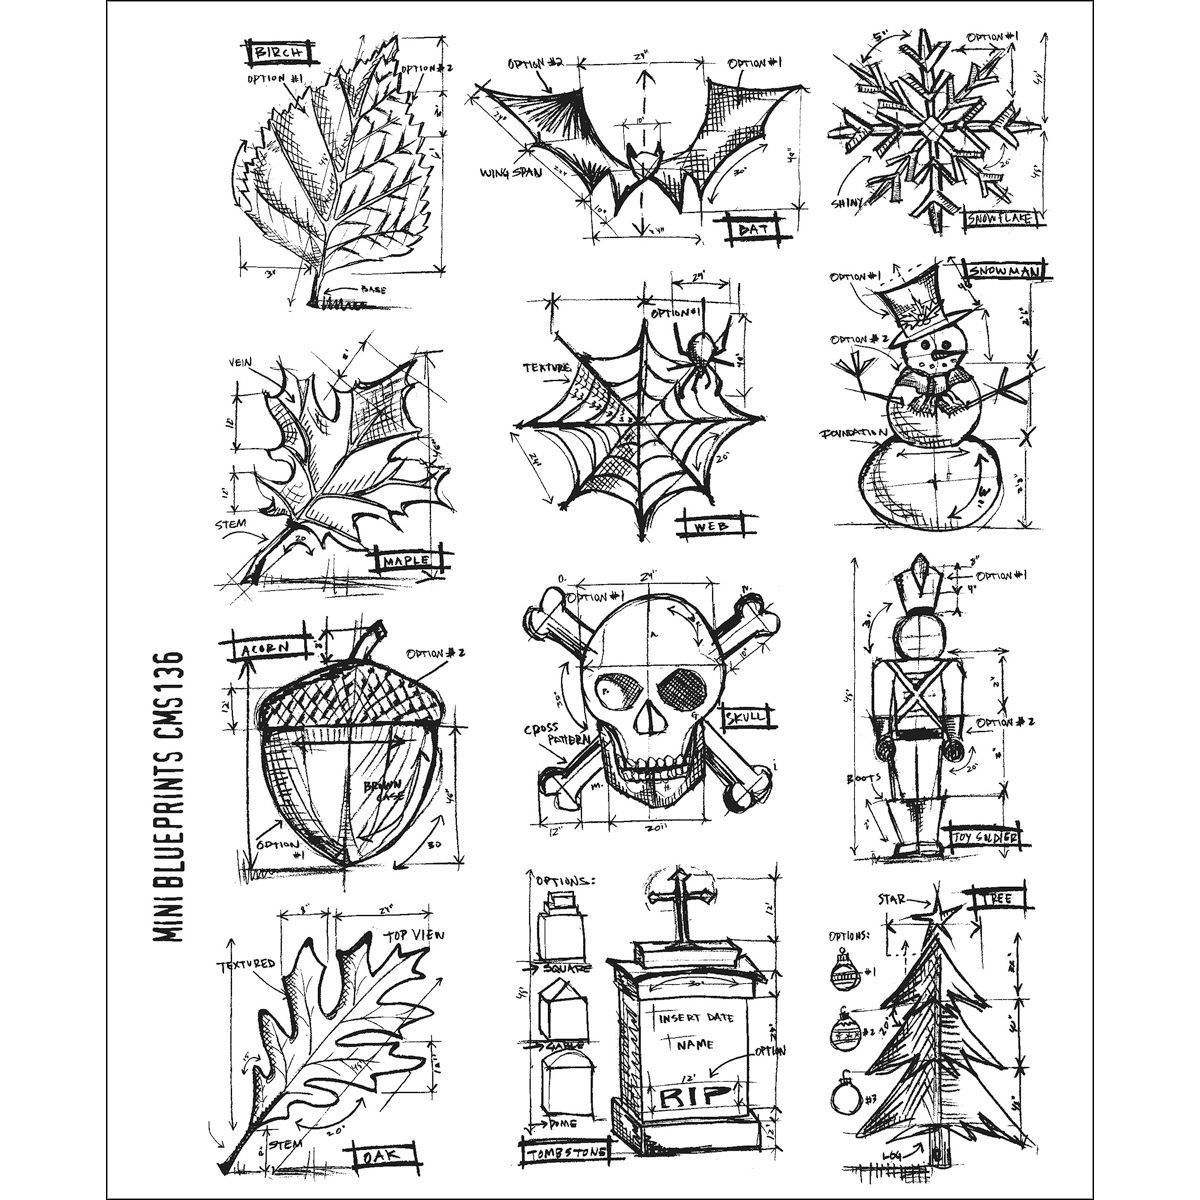 Tim holtz stampers anonymous large cling rubber stamp set mini tim holtz stampers anonymous large cling rubber stamp set mini blueprint paper crafting stamping malvernweather Image collections